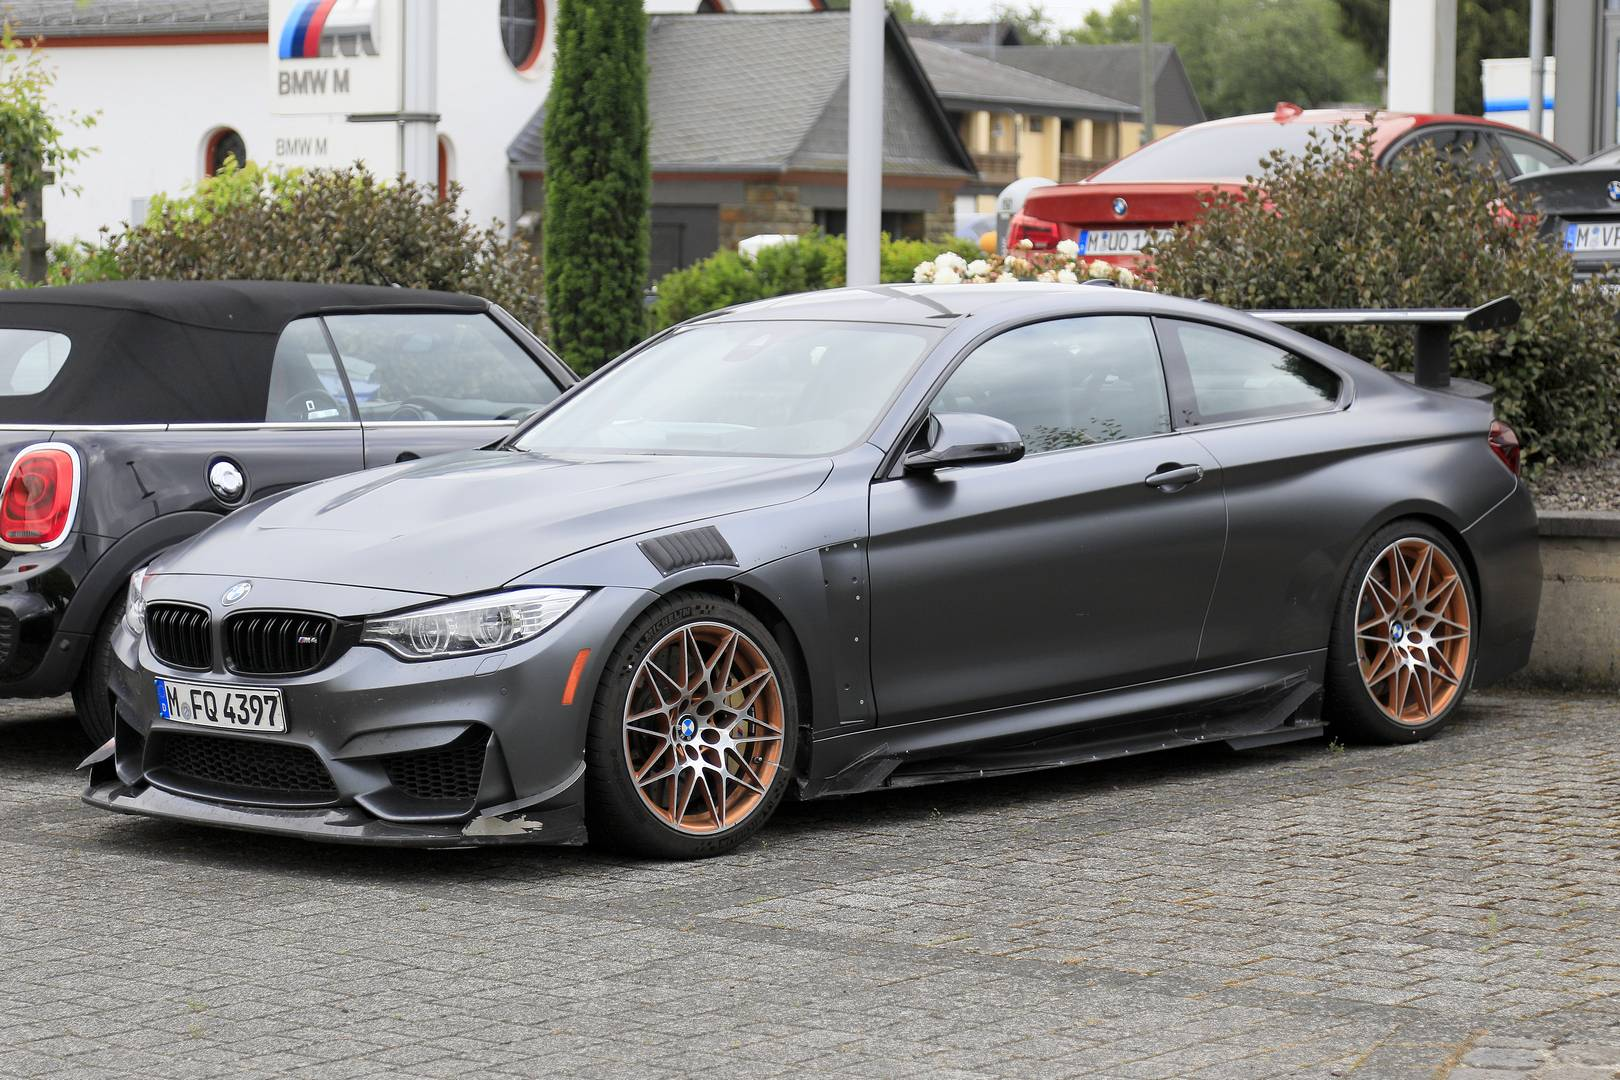 bmw m4 to get final swan song extreme bmw m4 gts seen. Black Bedroom Furniture Sets. Home Design Ideas